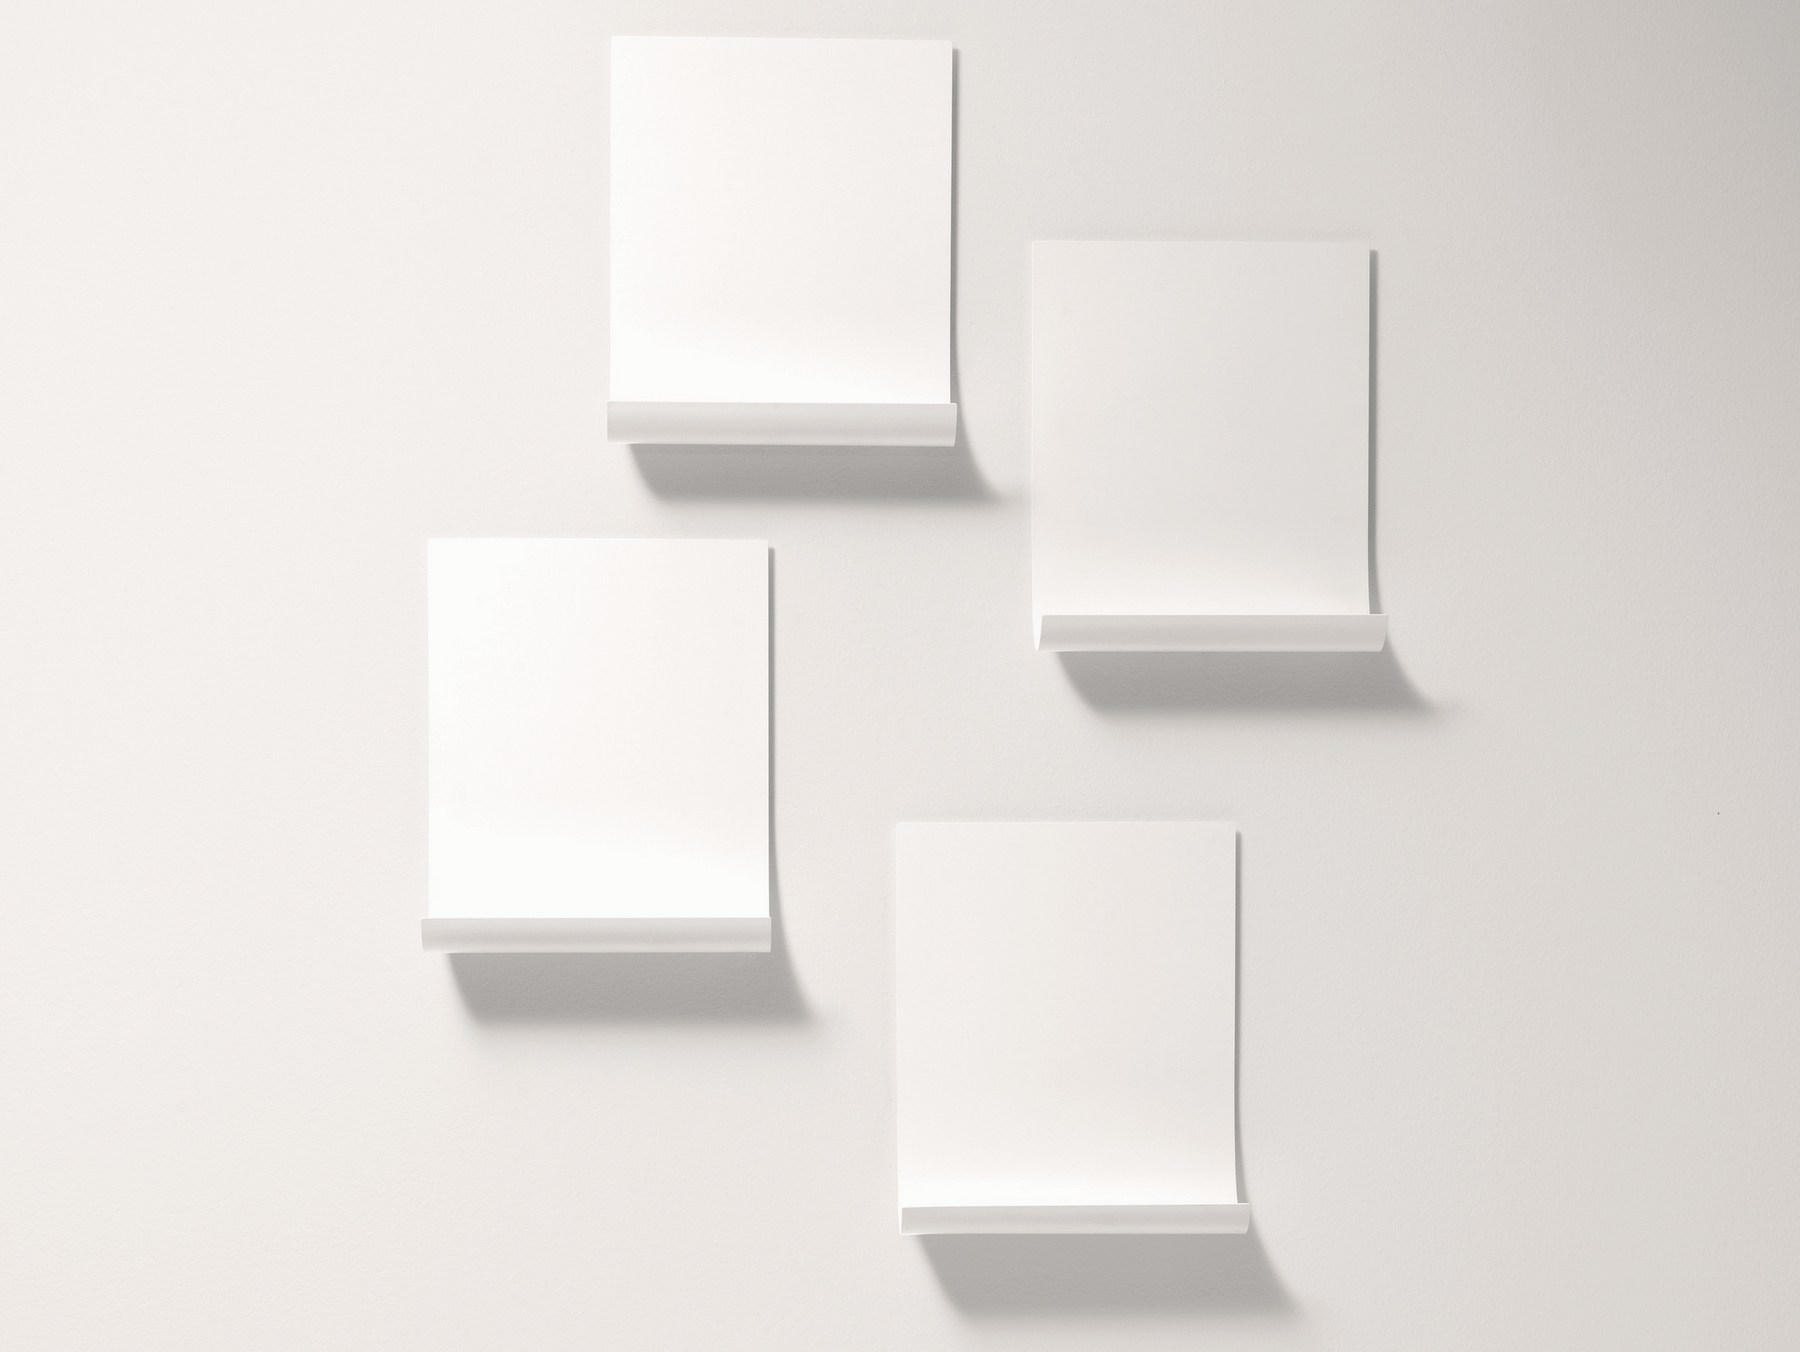 Softer Than Steel Wall Shelf by Nendo for Desalto